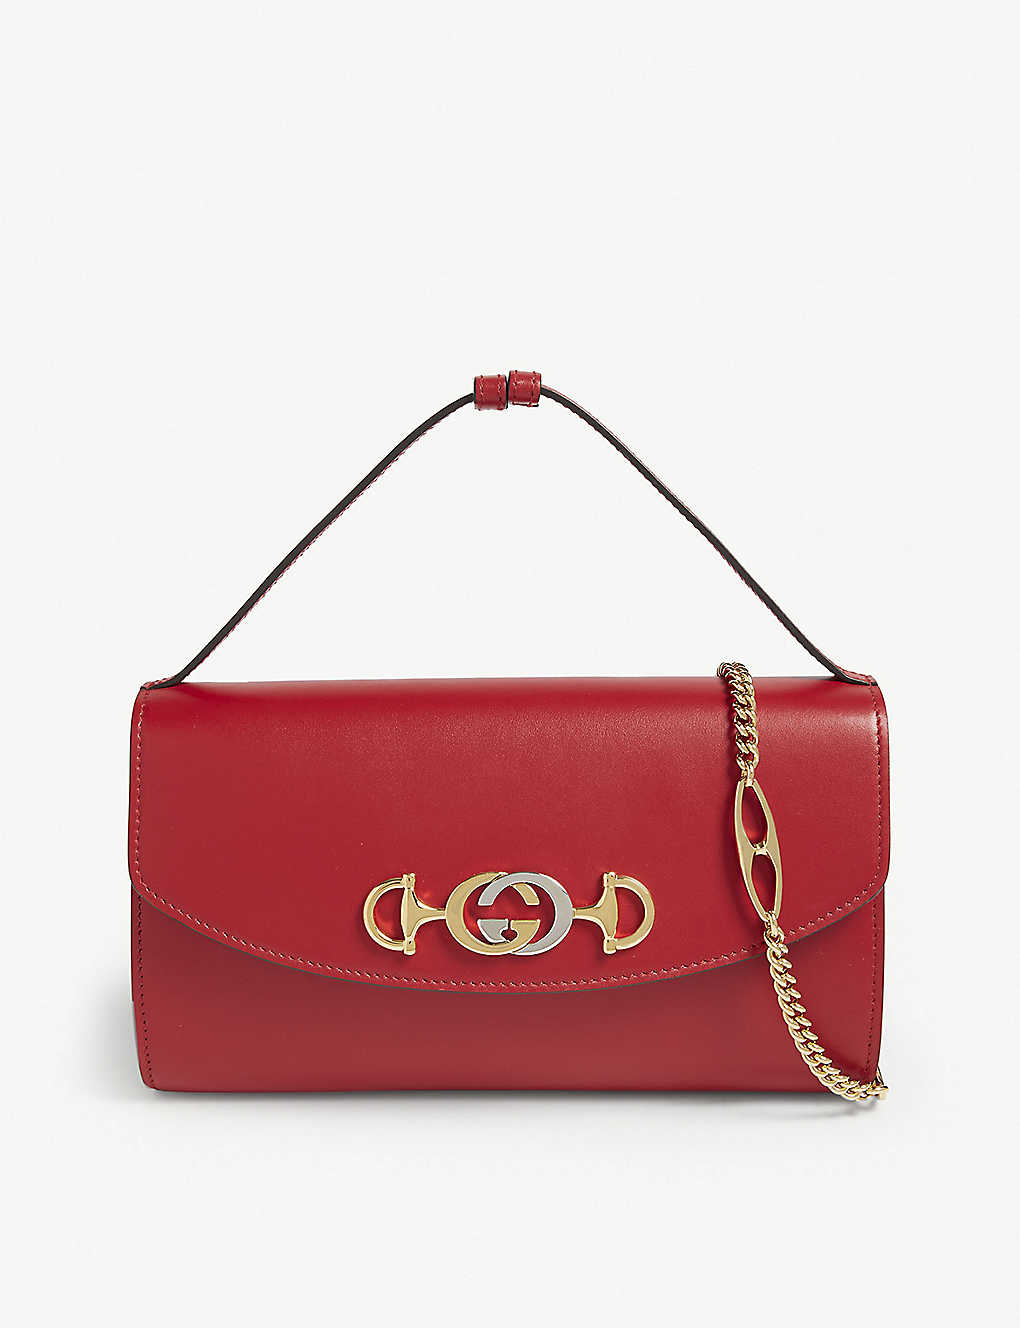 8abbd5f819b Zumi small leather shoulder bag - Hibiscus red ...